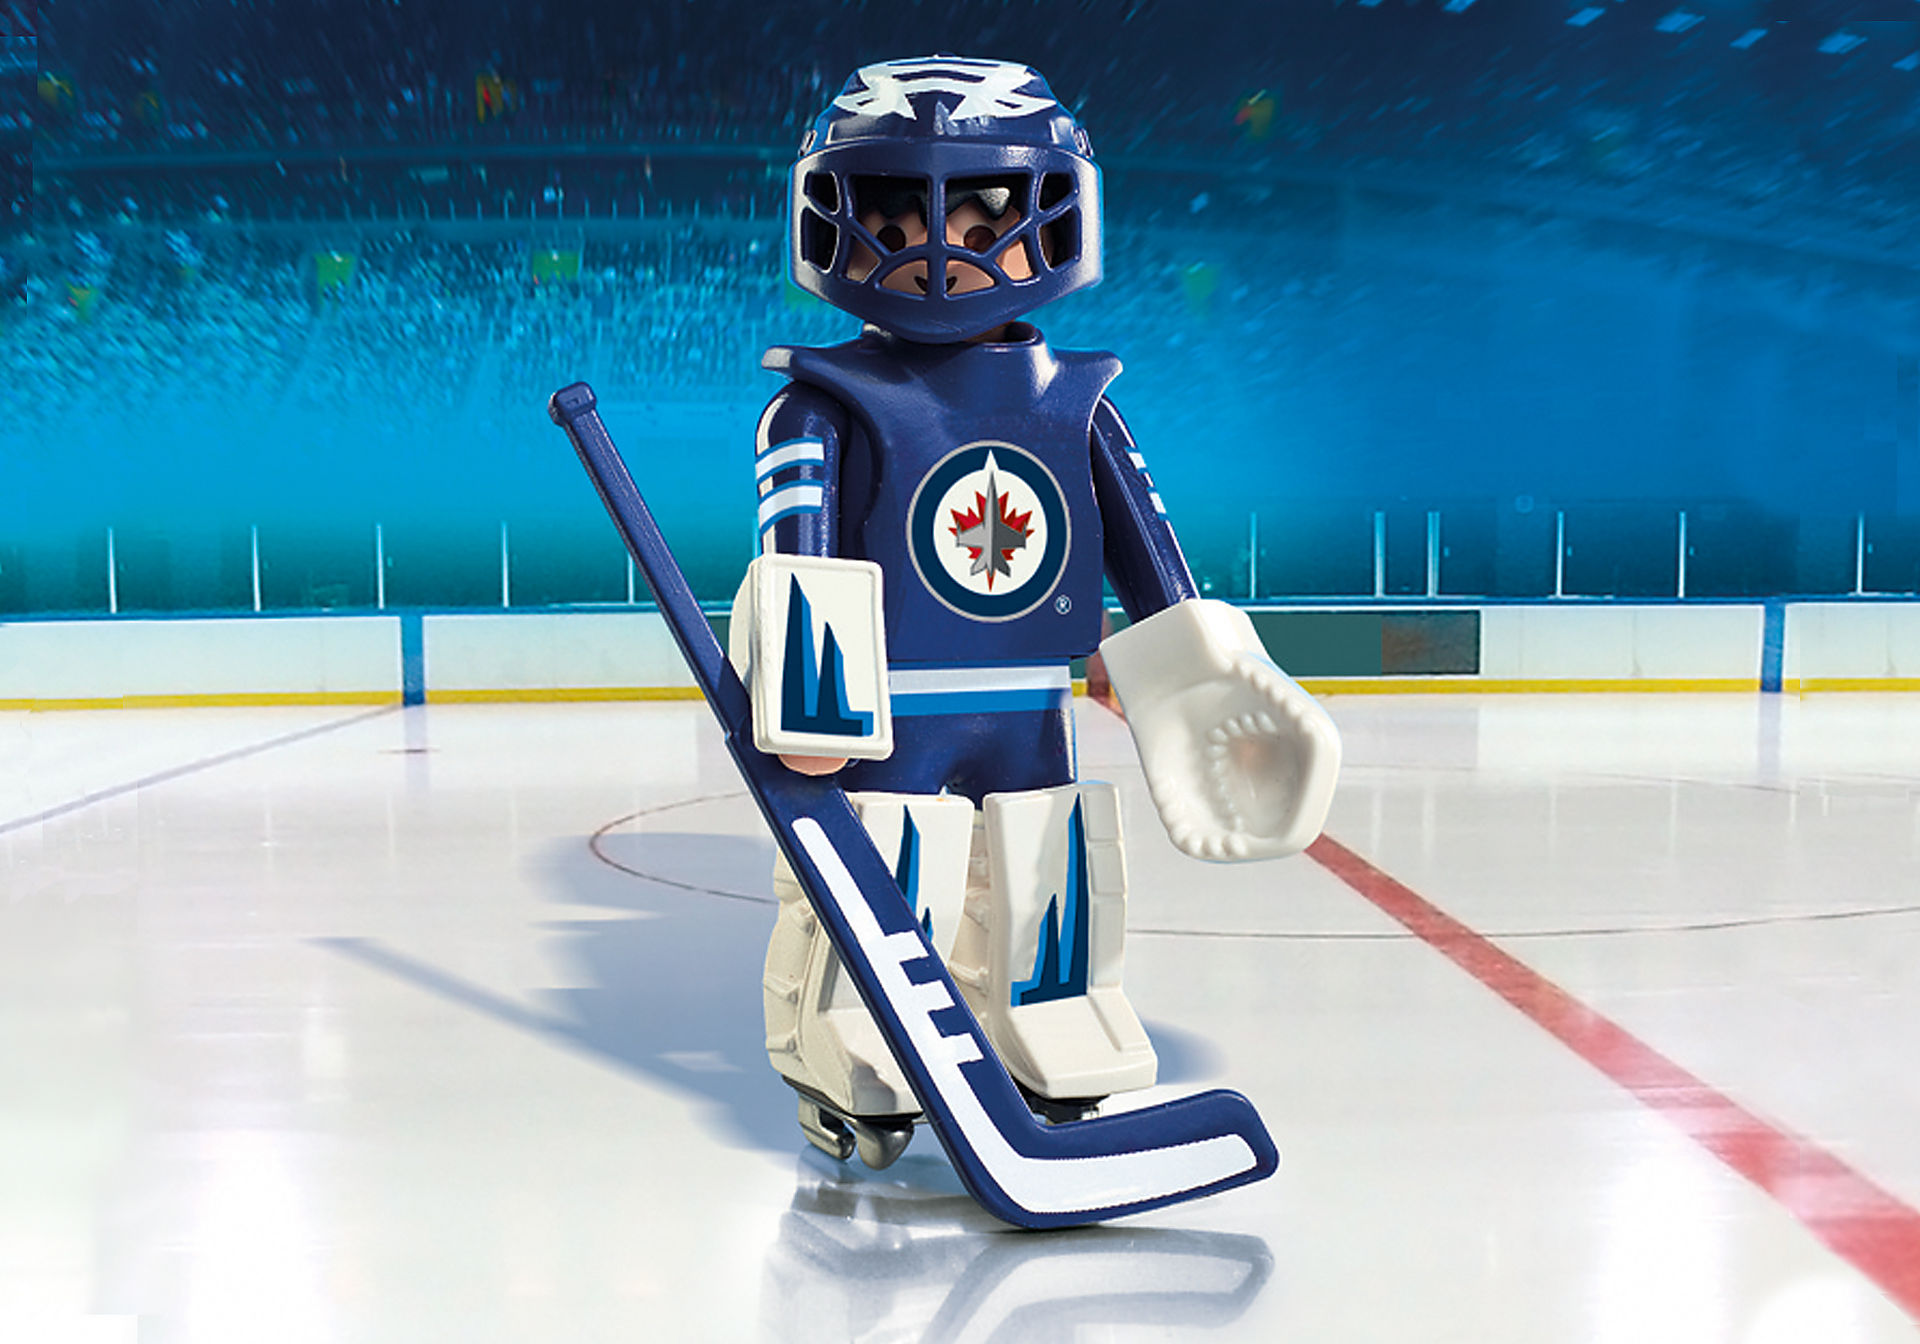 9020 NHL™ Winnipeg Jets™ Goalie zoom image1